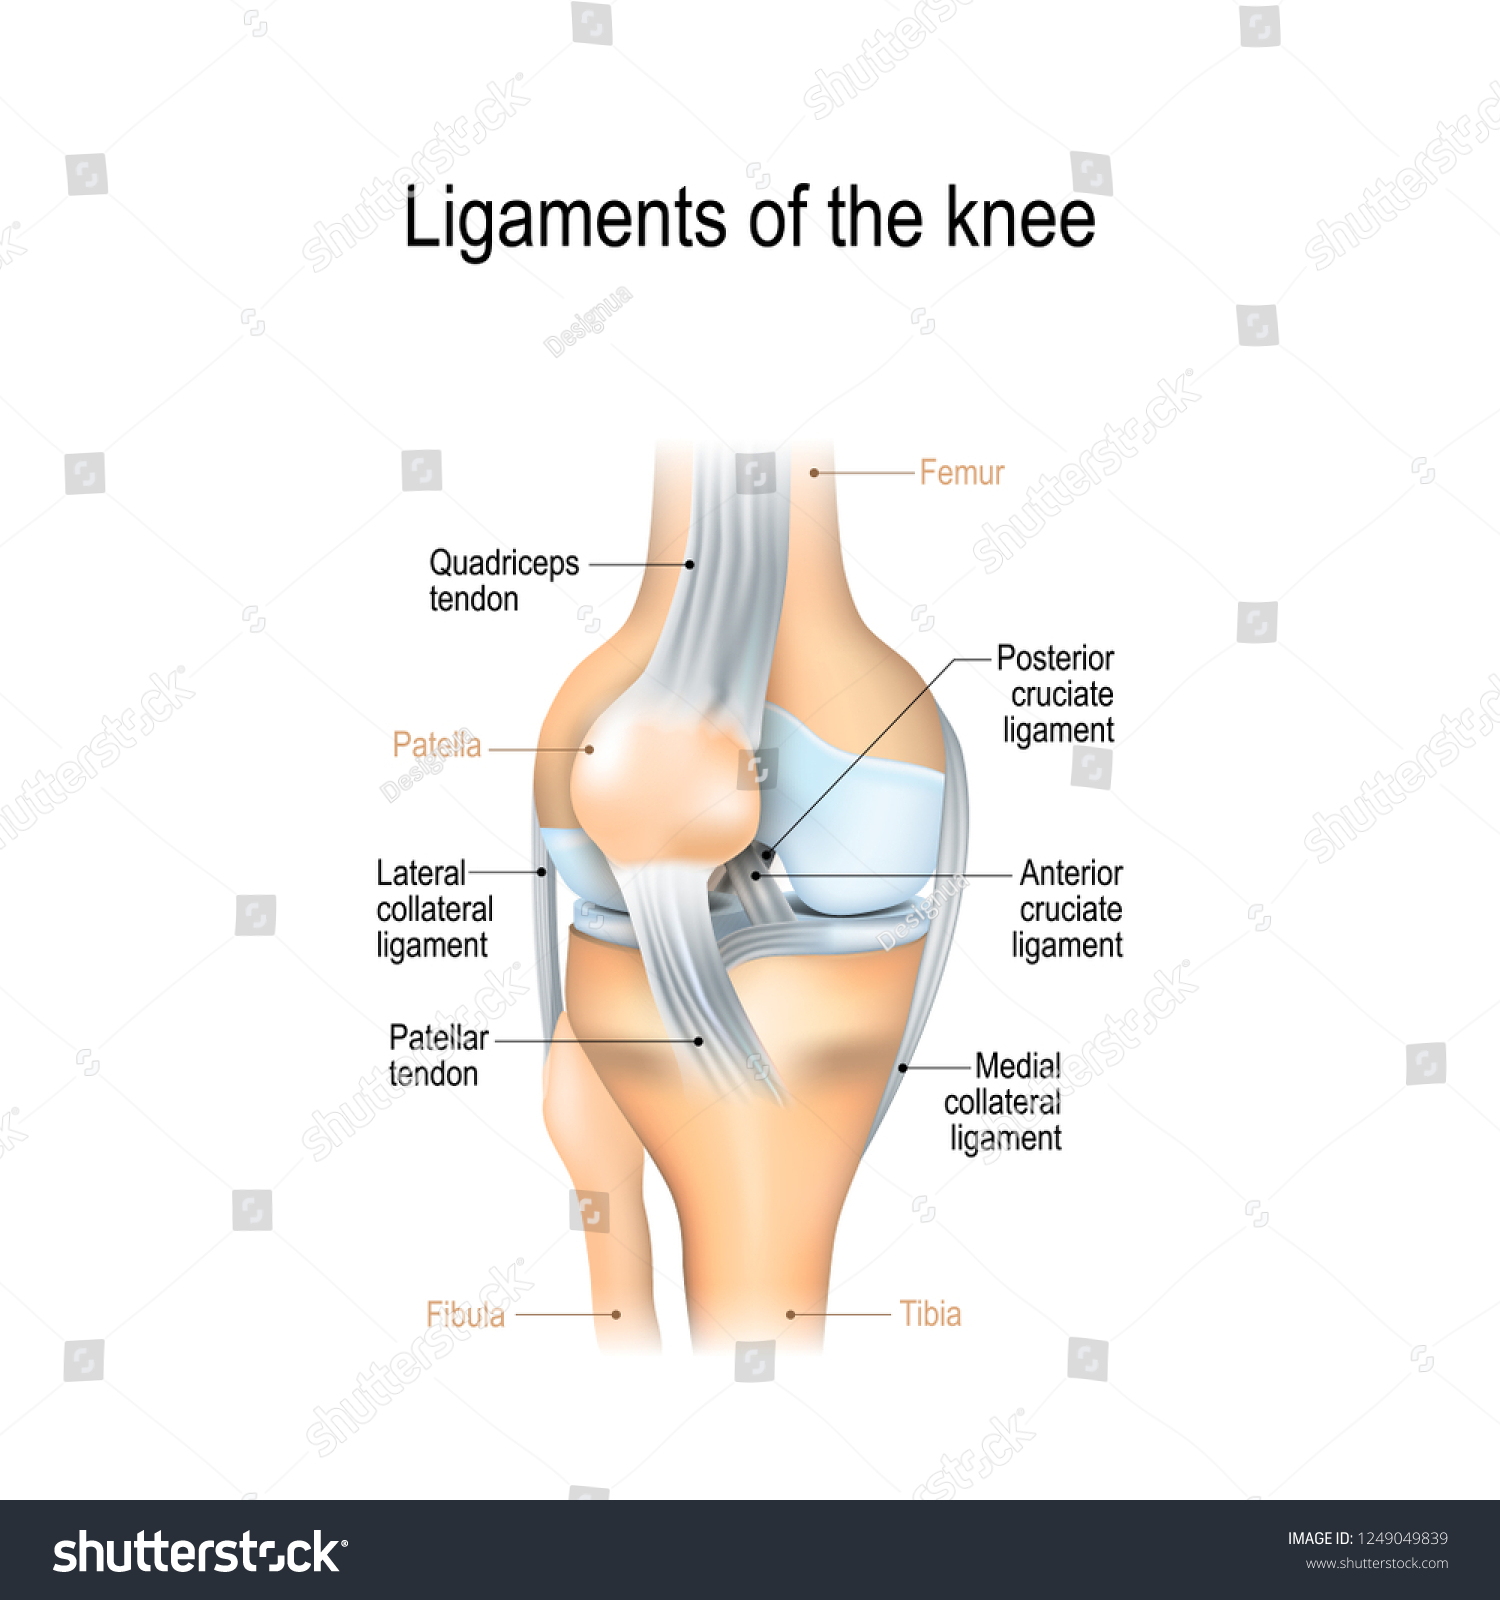 Ligaments Knee Anterior Posterior Cruciate Ligaments Stock